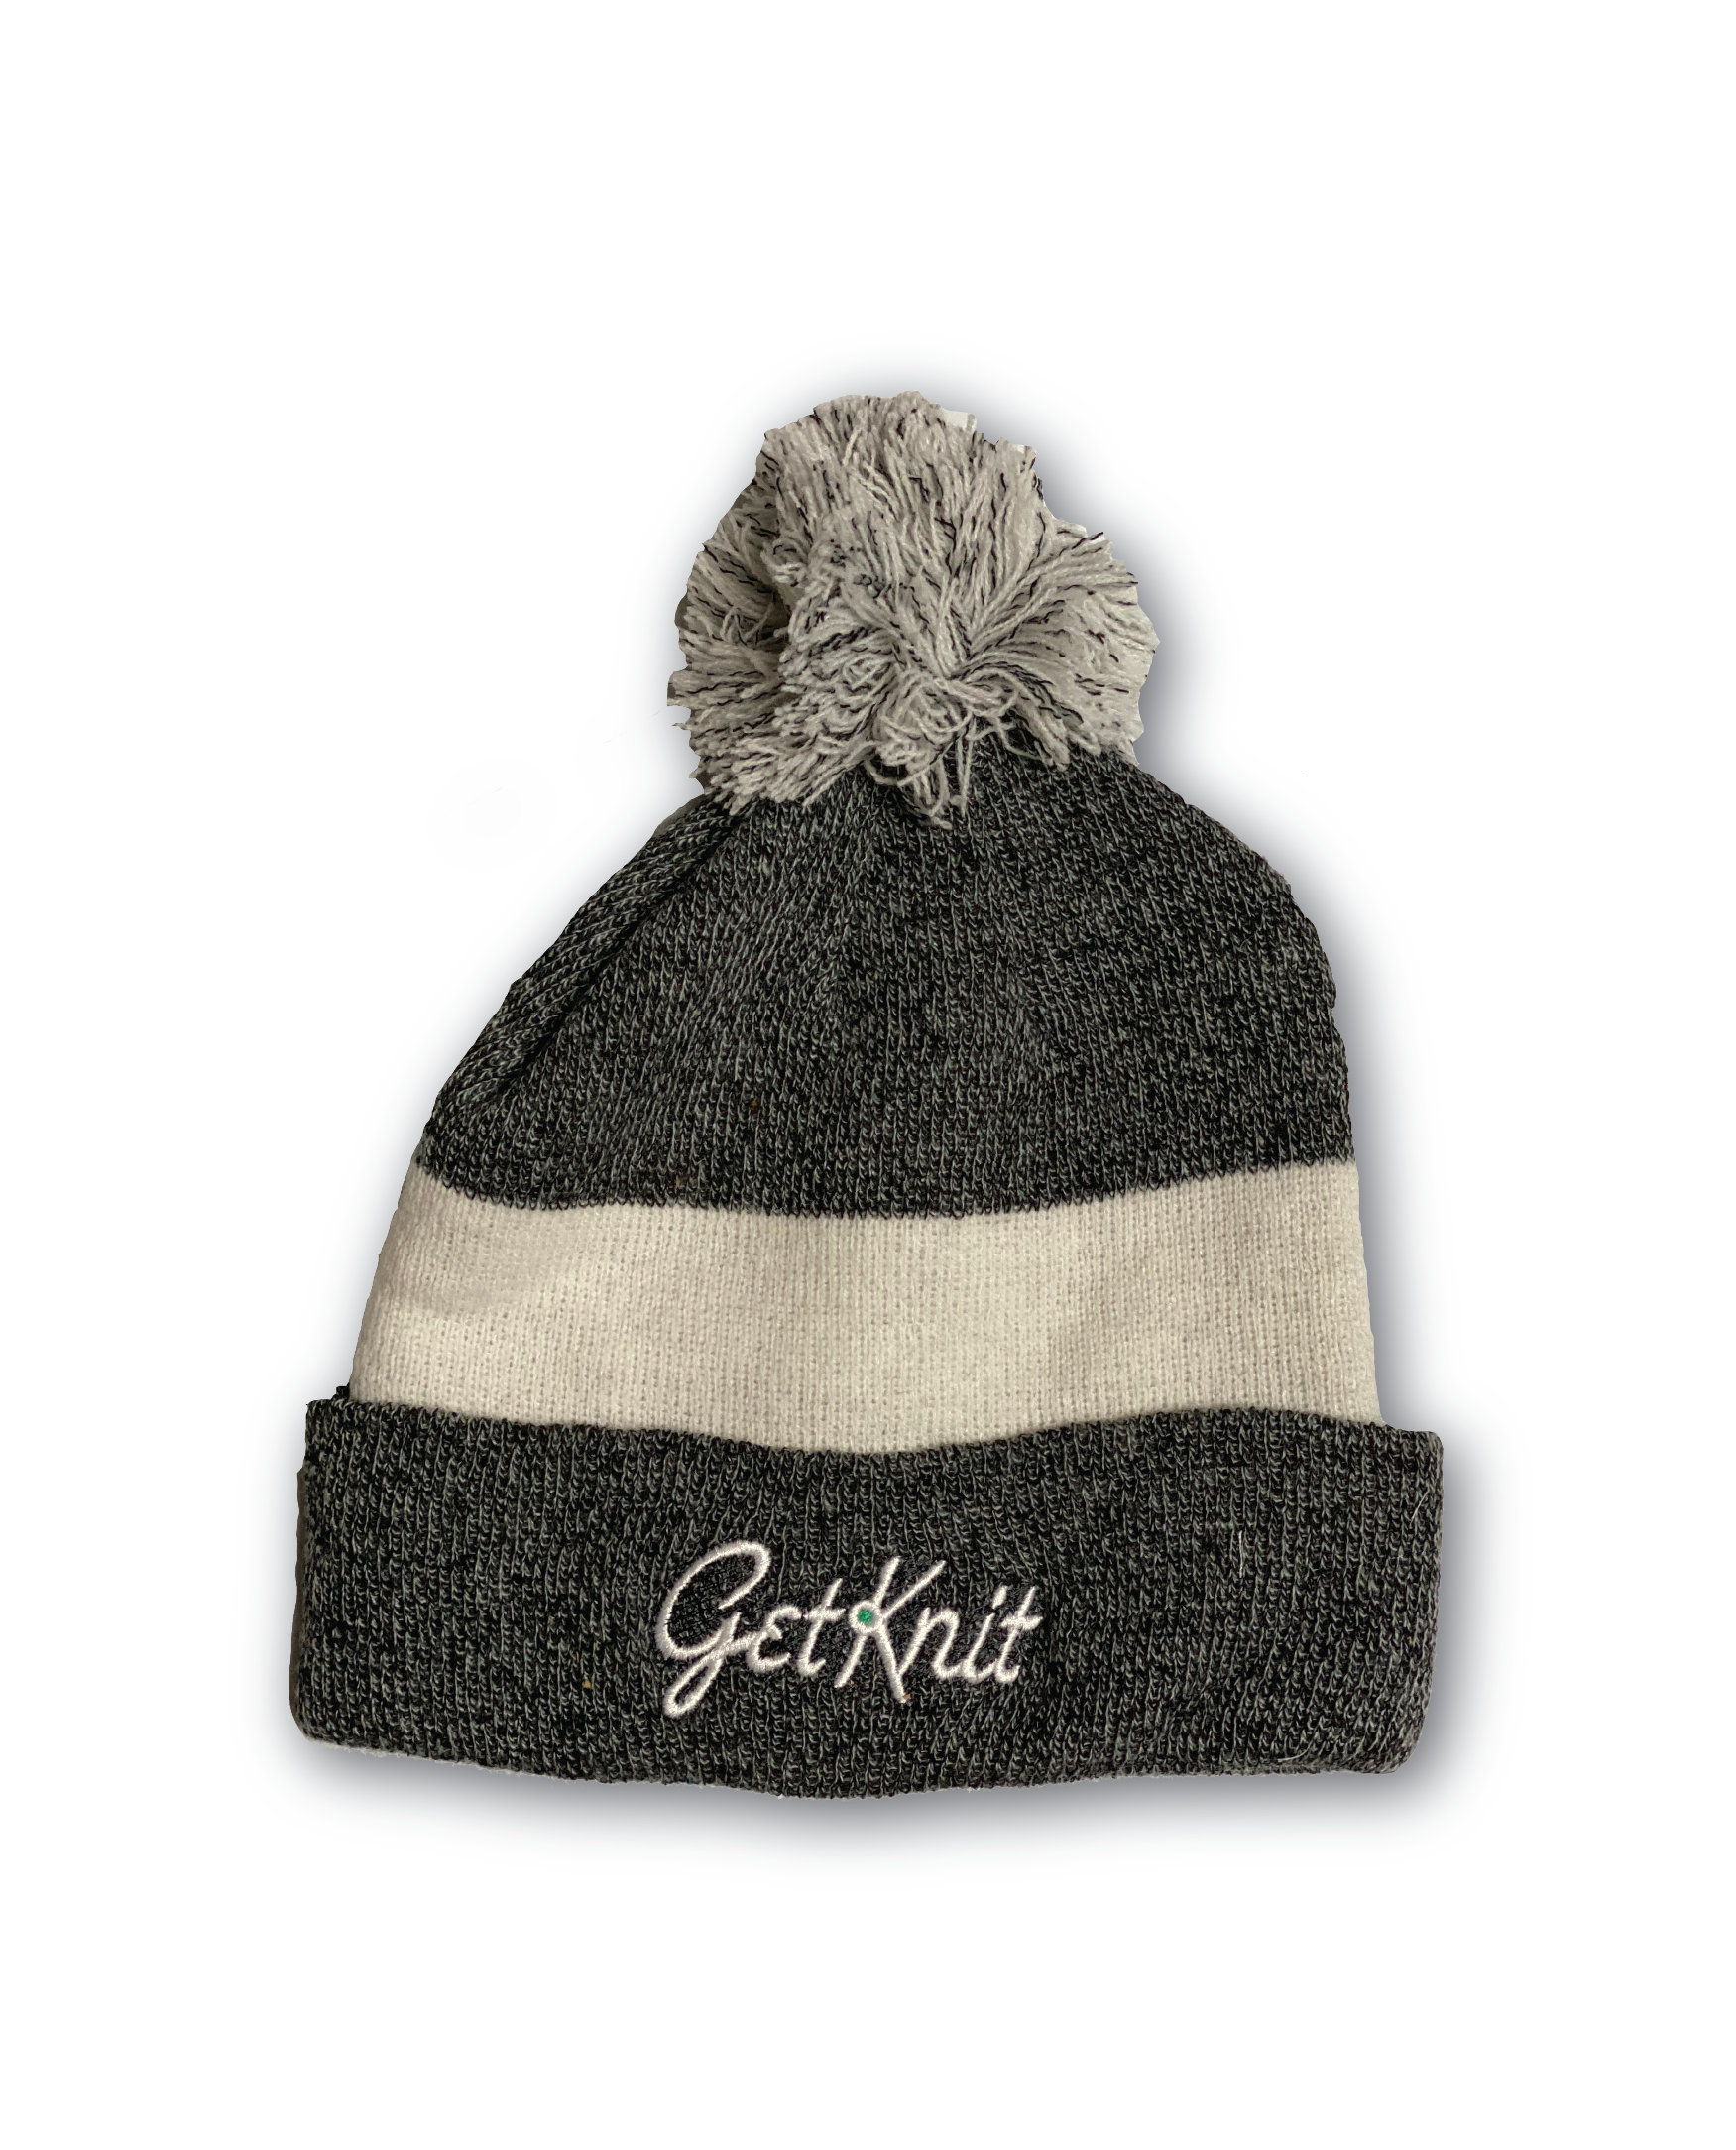 Embroidered GetKnit Stocking Cap